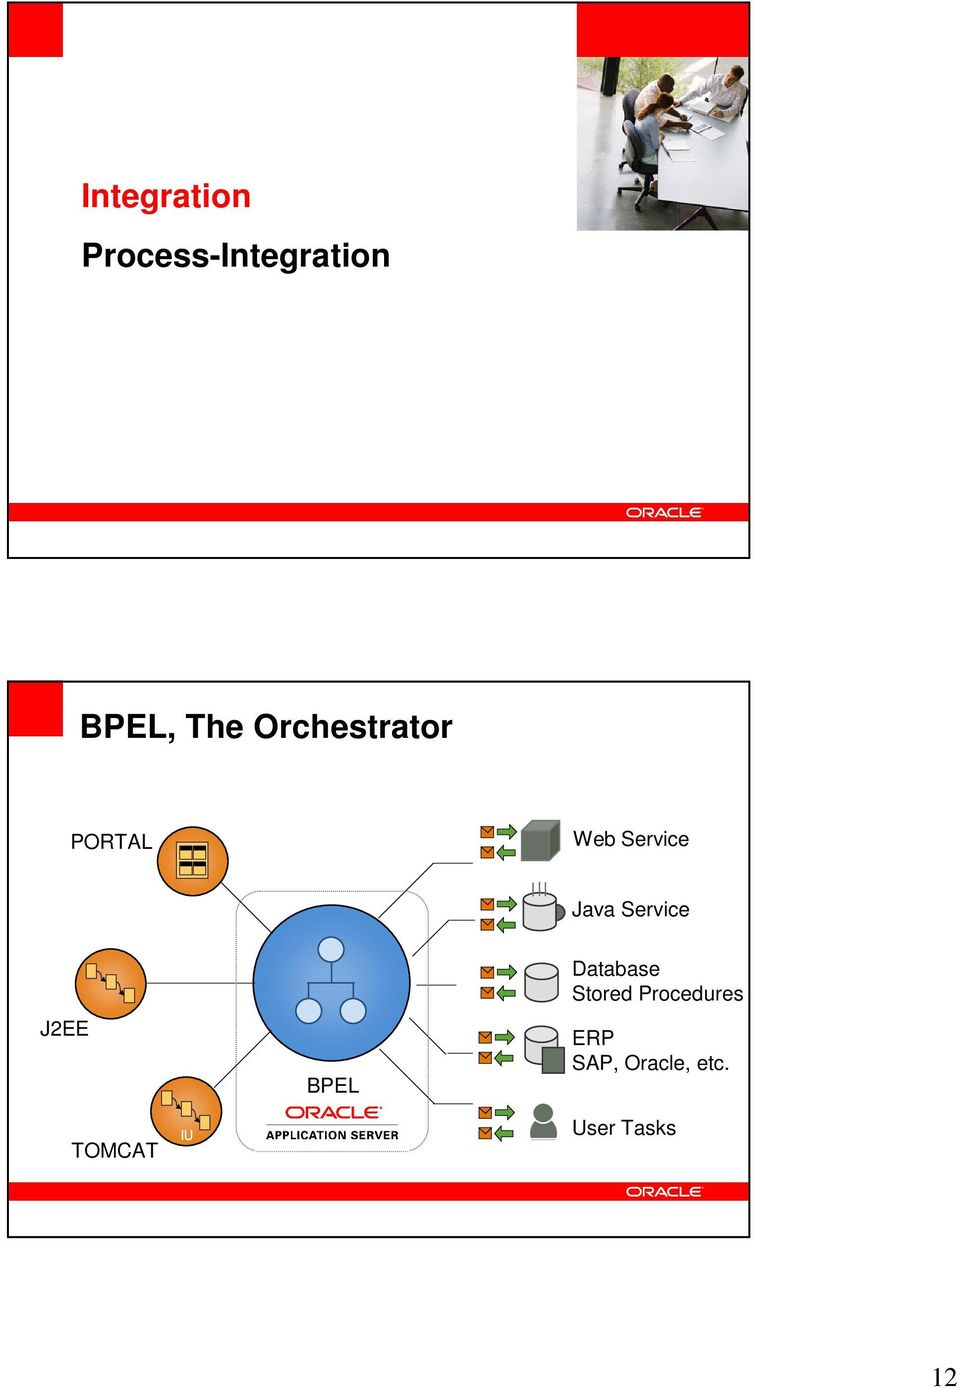 Bp xslt mpr as well Selim Burdurolu Enterprise Architect Named And Strategic likewise Part 4 Oracle Bpm 12c Process Invoke Database likewise The Oracle Integration Platform Portfolio As Per Oow 2016 On Premises And Primarily In The Cloud also Integrating With Erp Cloud Using Ics. on oracle xslt mapper